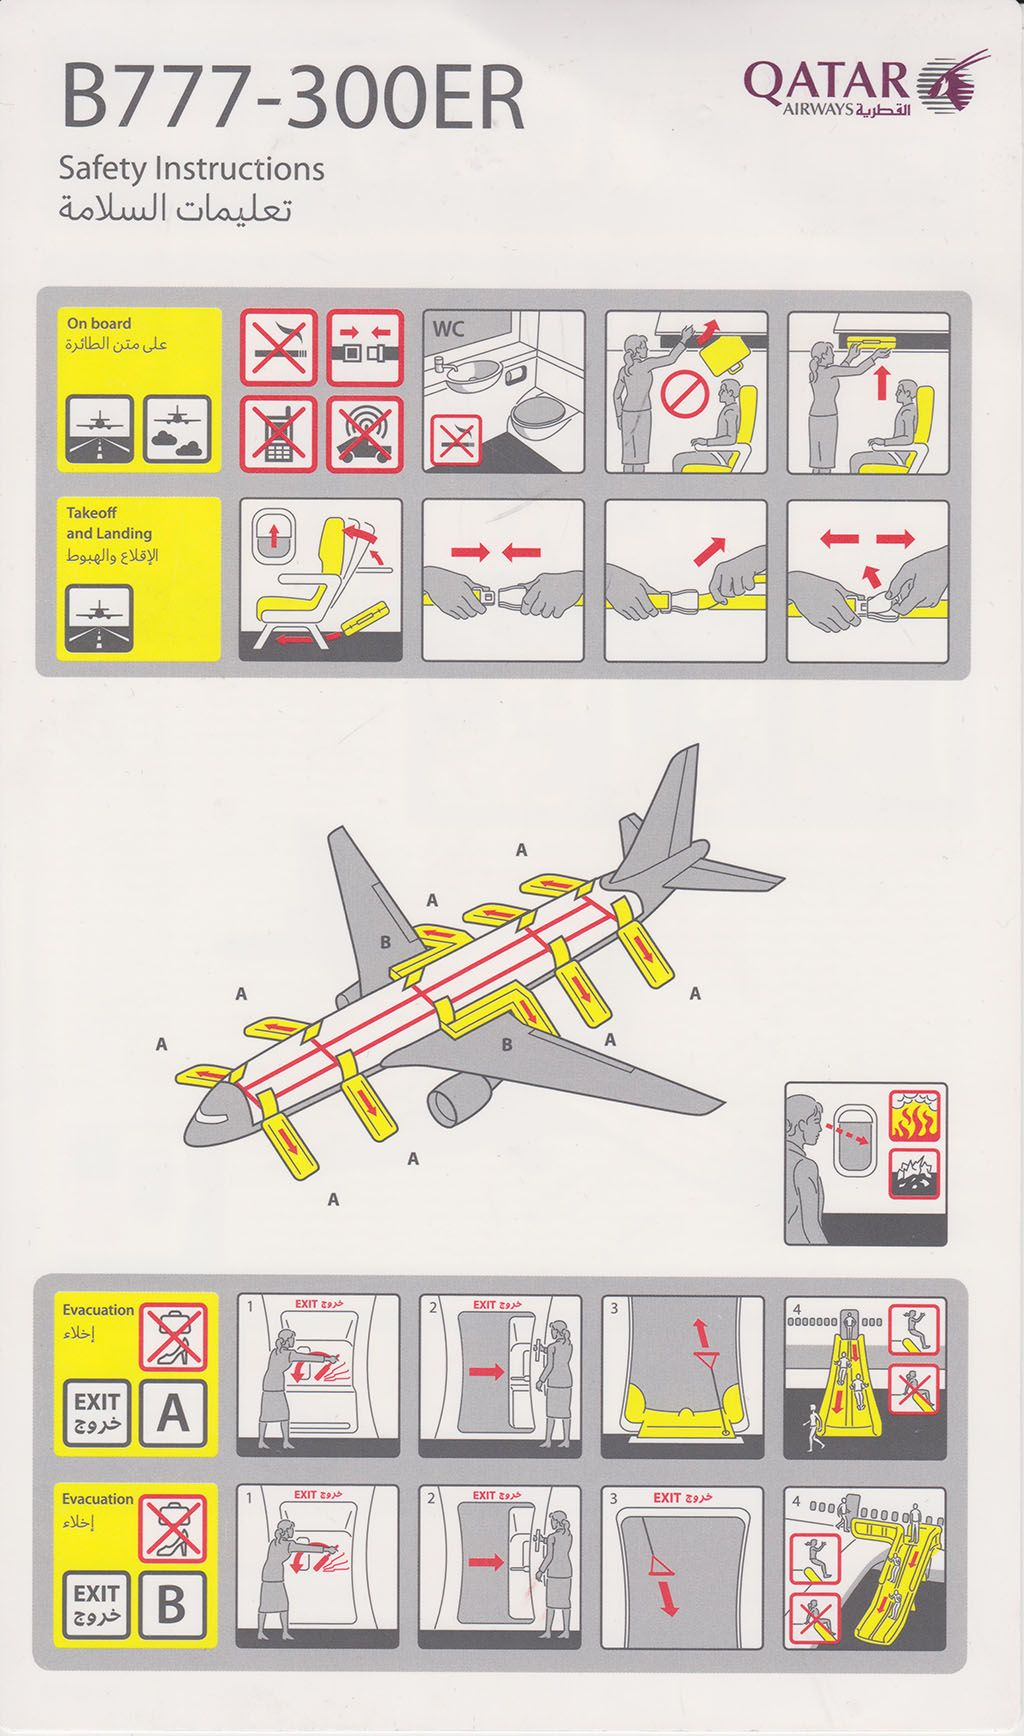 Safety Card Qatar Airways B777-300 (1) front | Safety Card ...